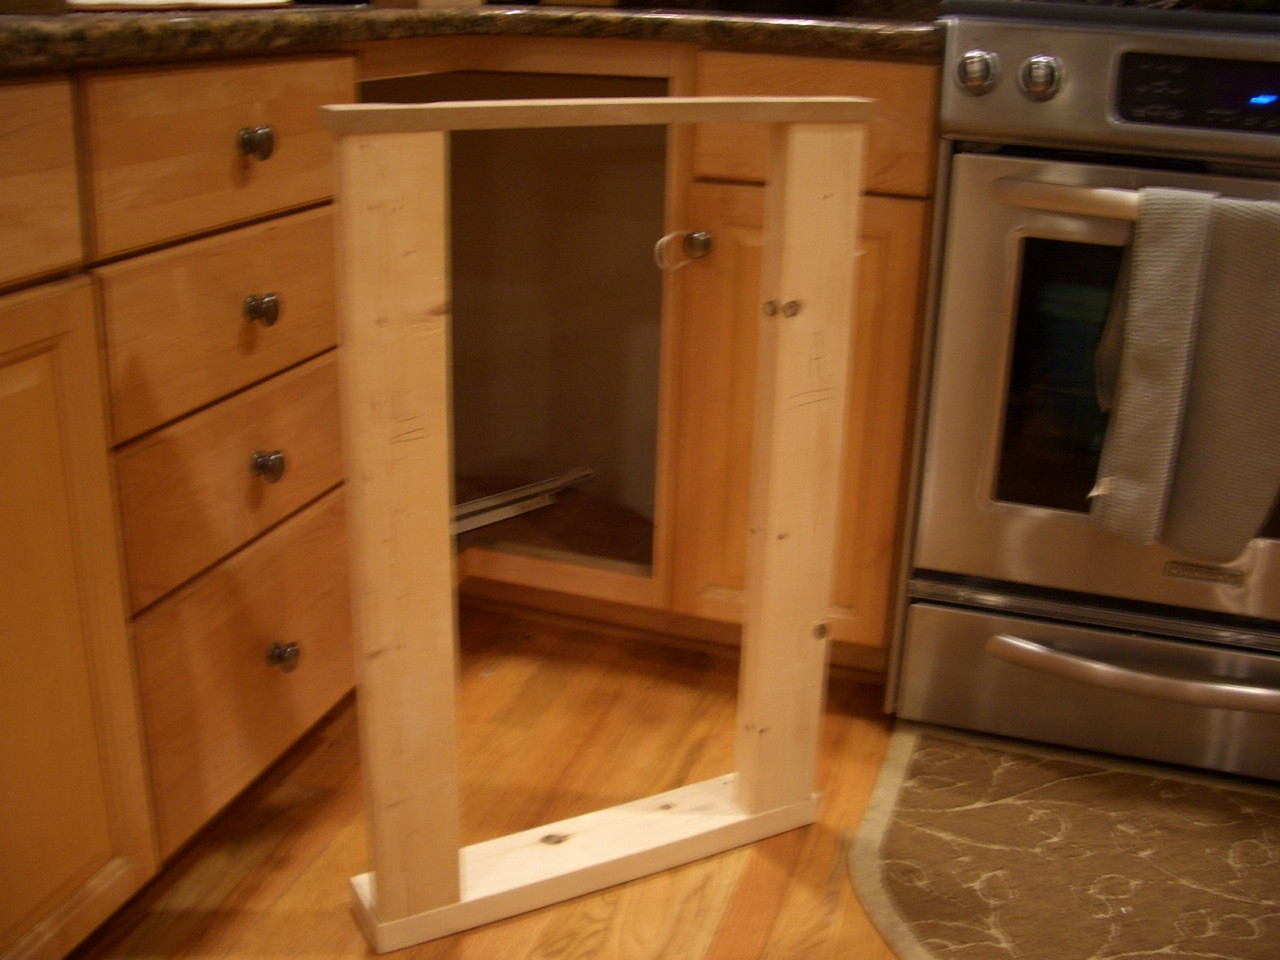 Best ideas about DIY Kitchen Cabinet Drawers . Save or Pin DIY Corner Cabinet Drawers Now.